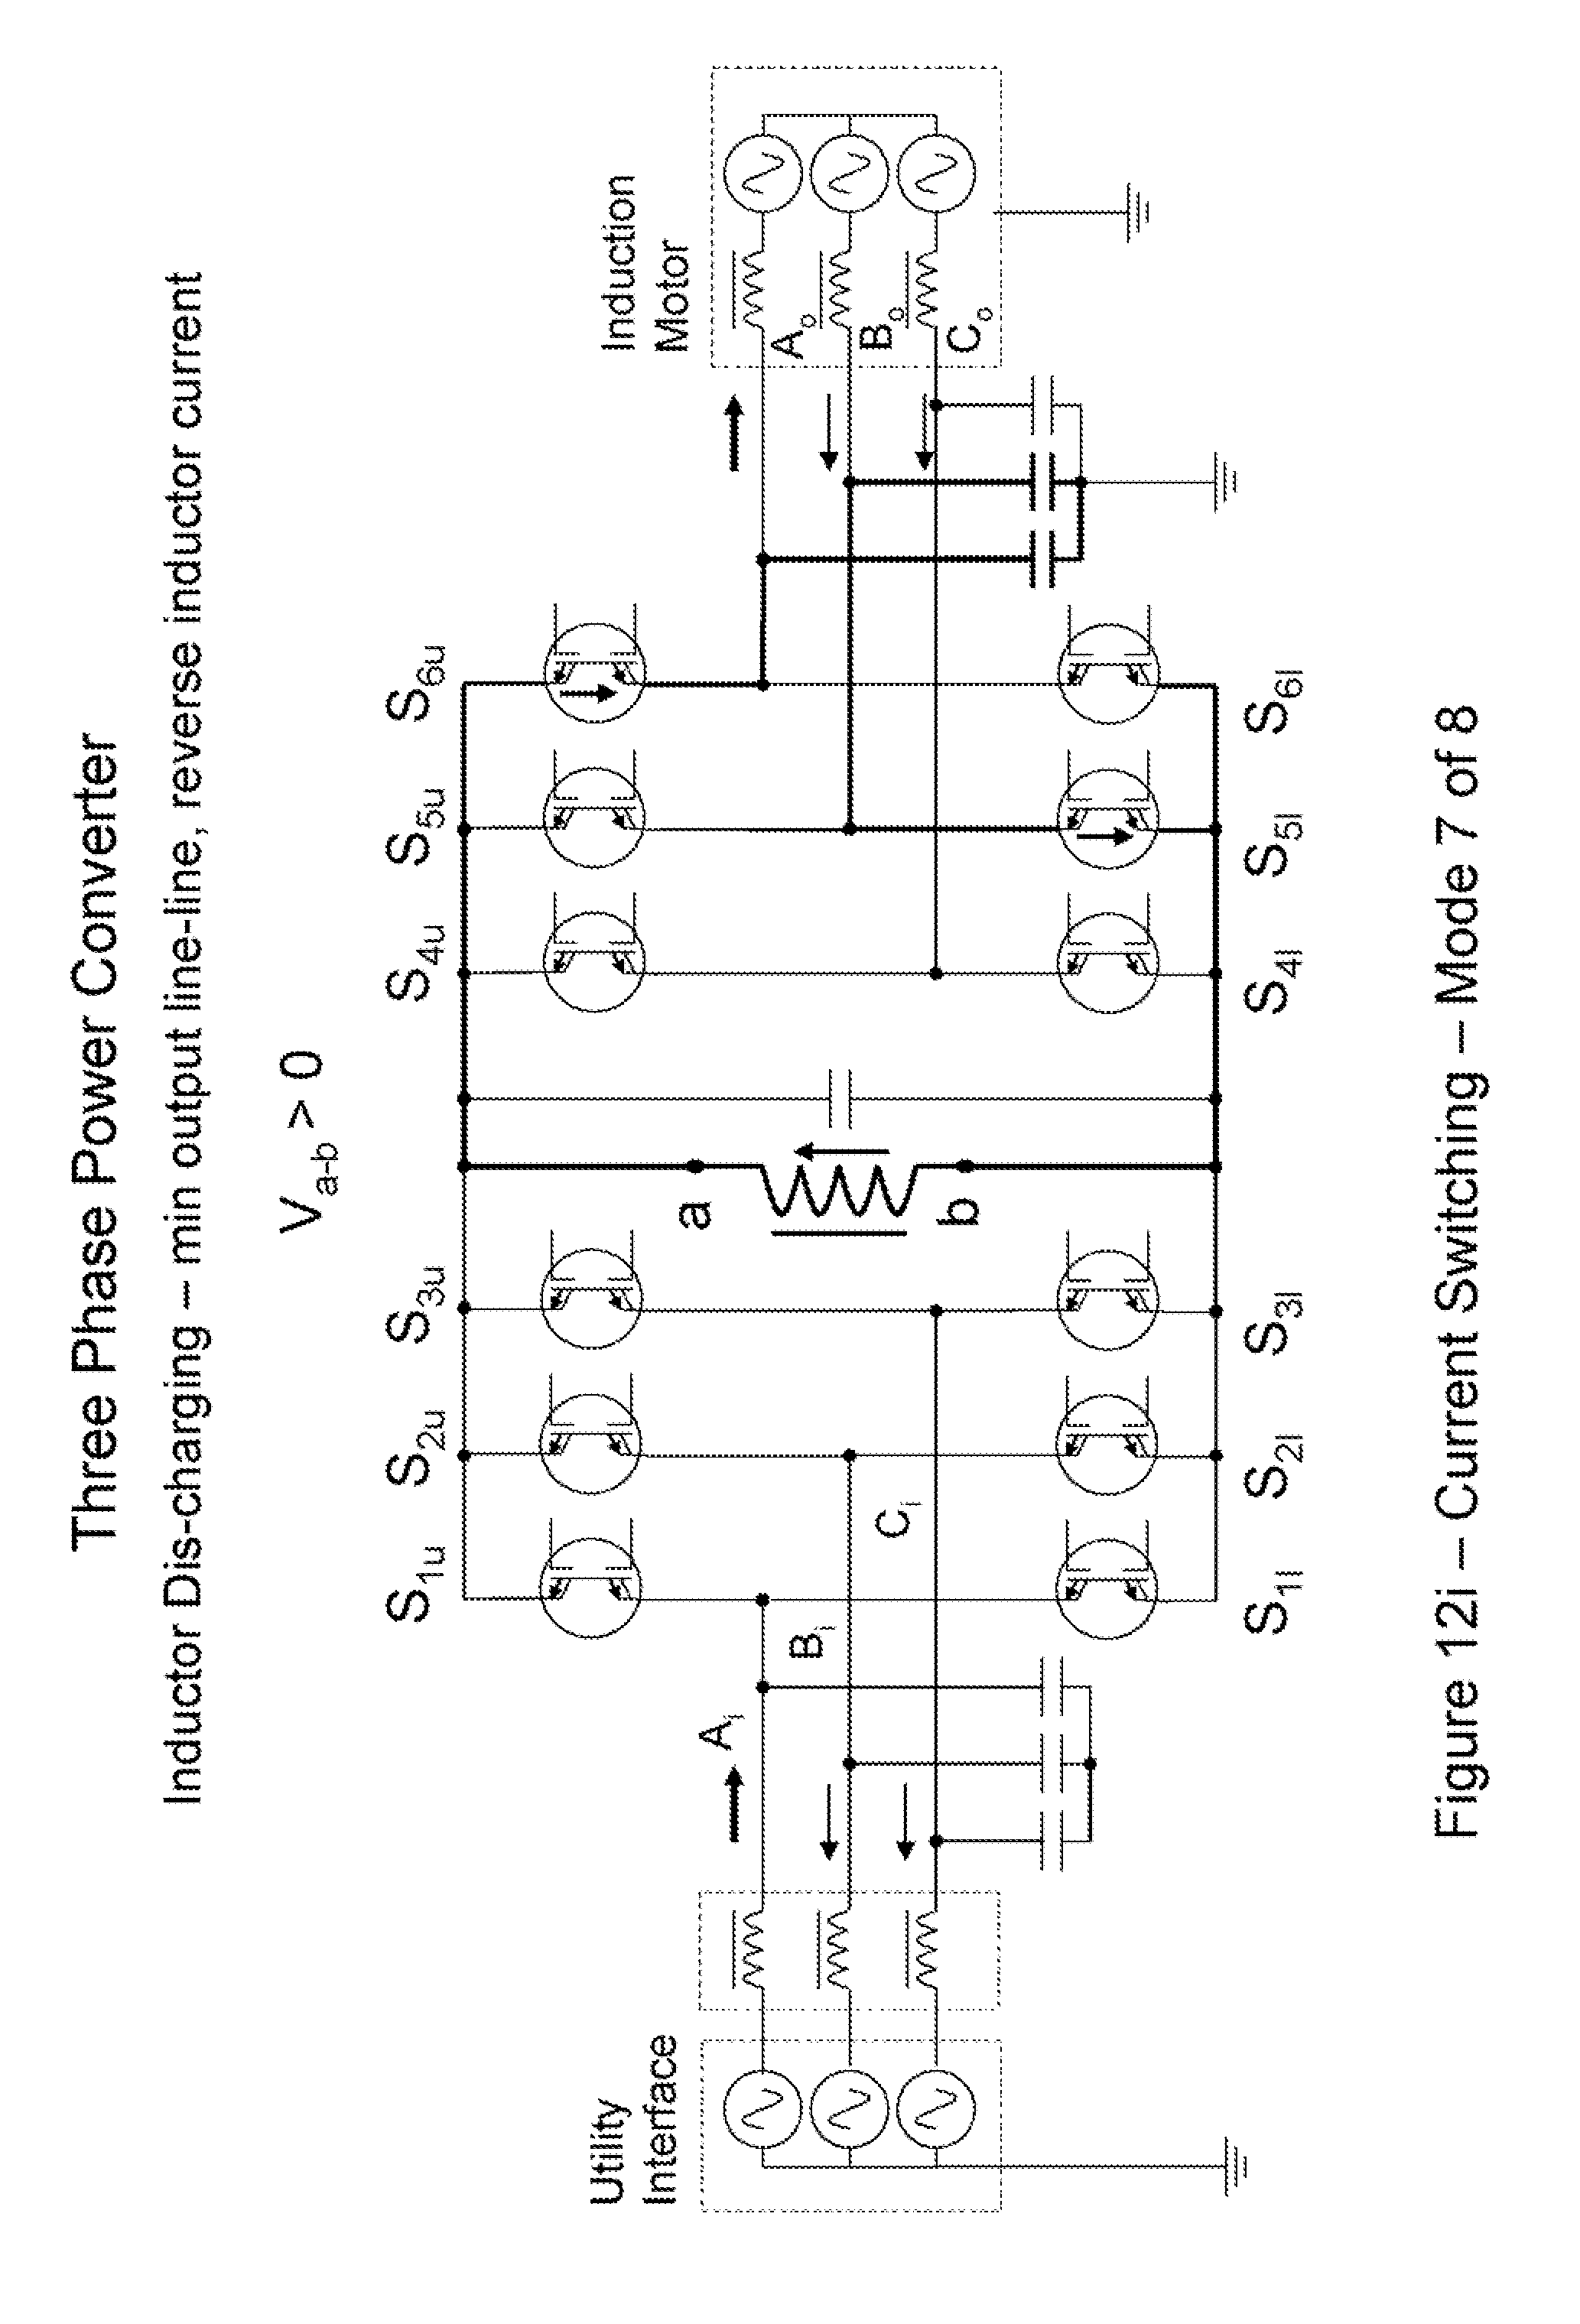 Electronic Crowbar For Ac And Dc Lines Patent Us8432711 Power Transfer Devices Methods Systems With Drawing